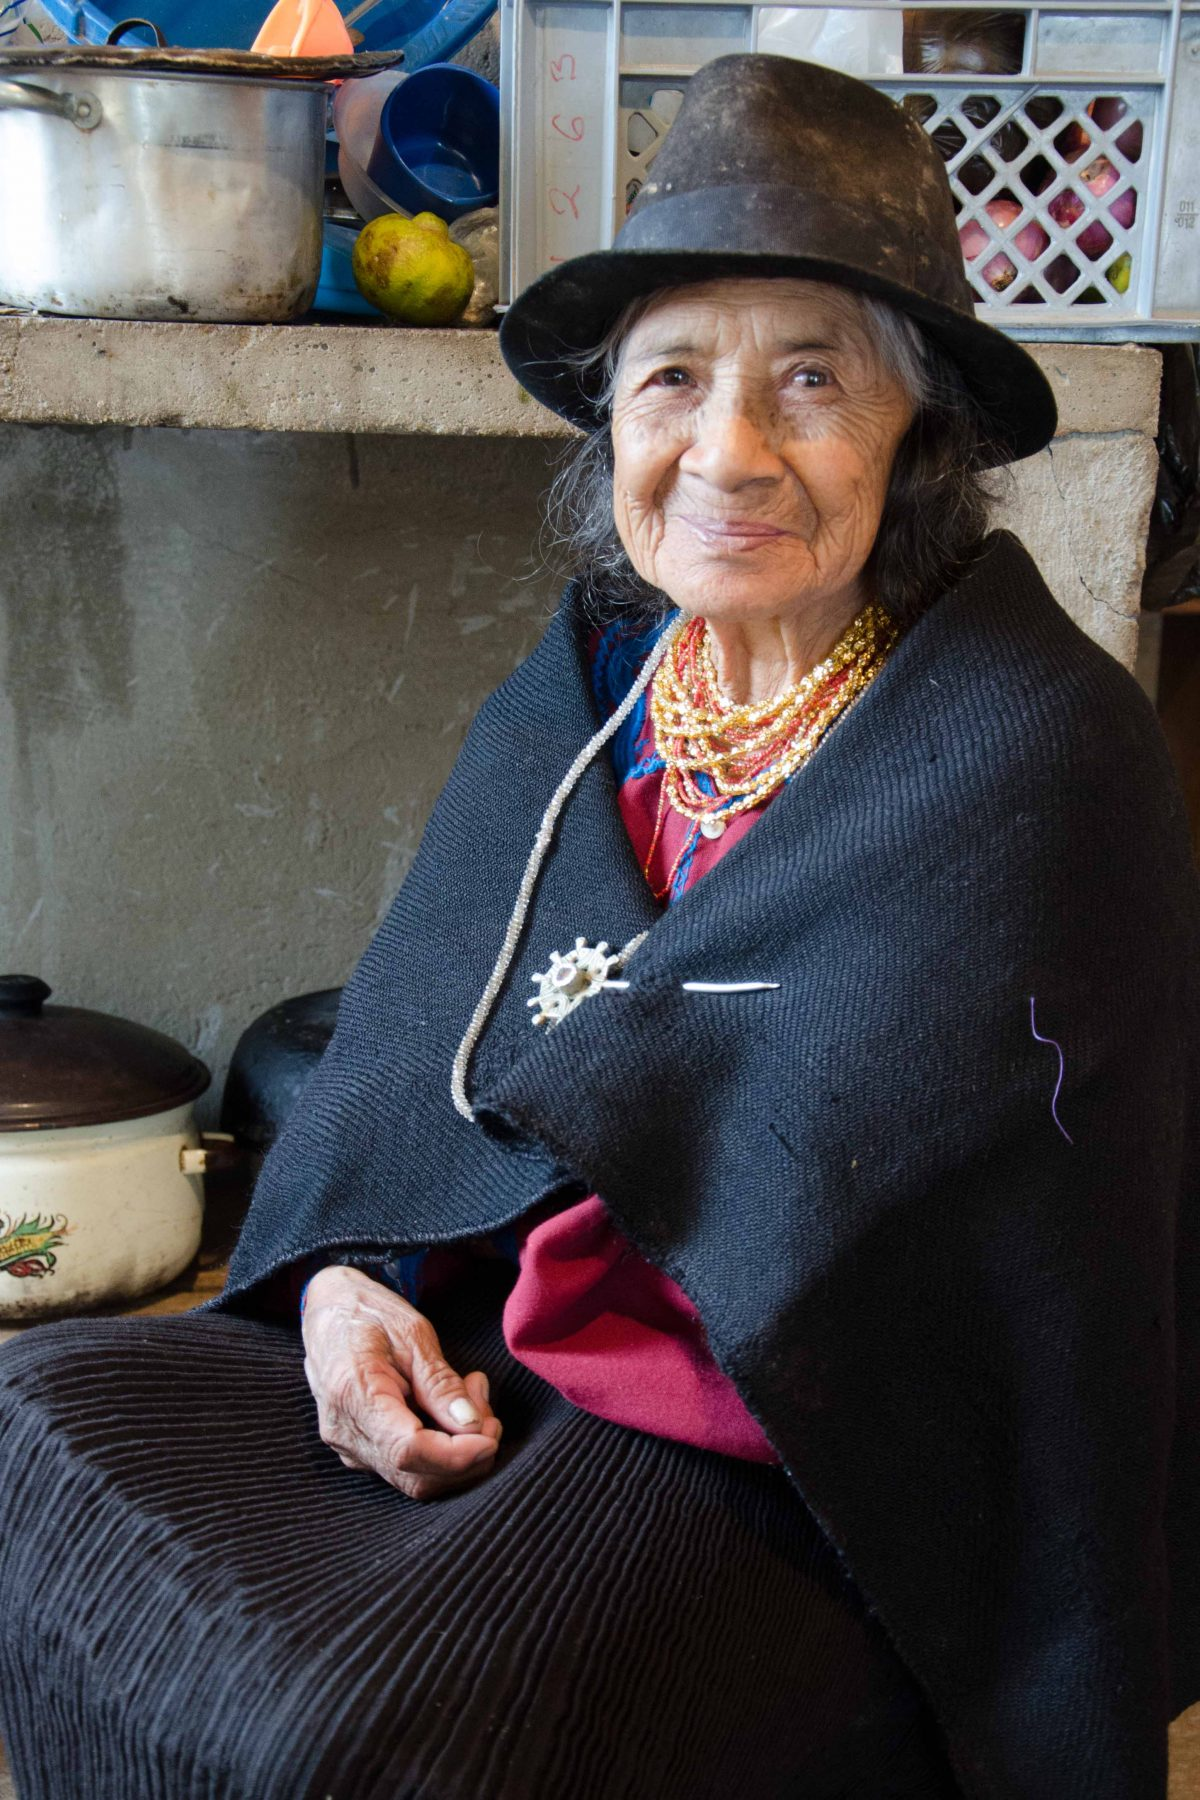 My friend's mother at her family home in the rural village of Tenta.